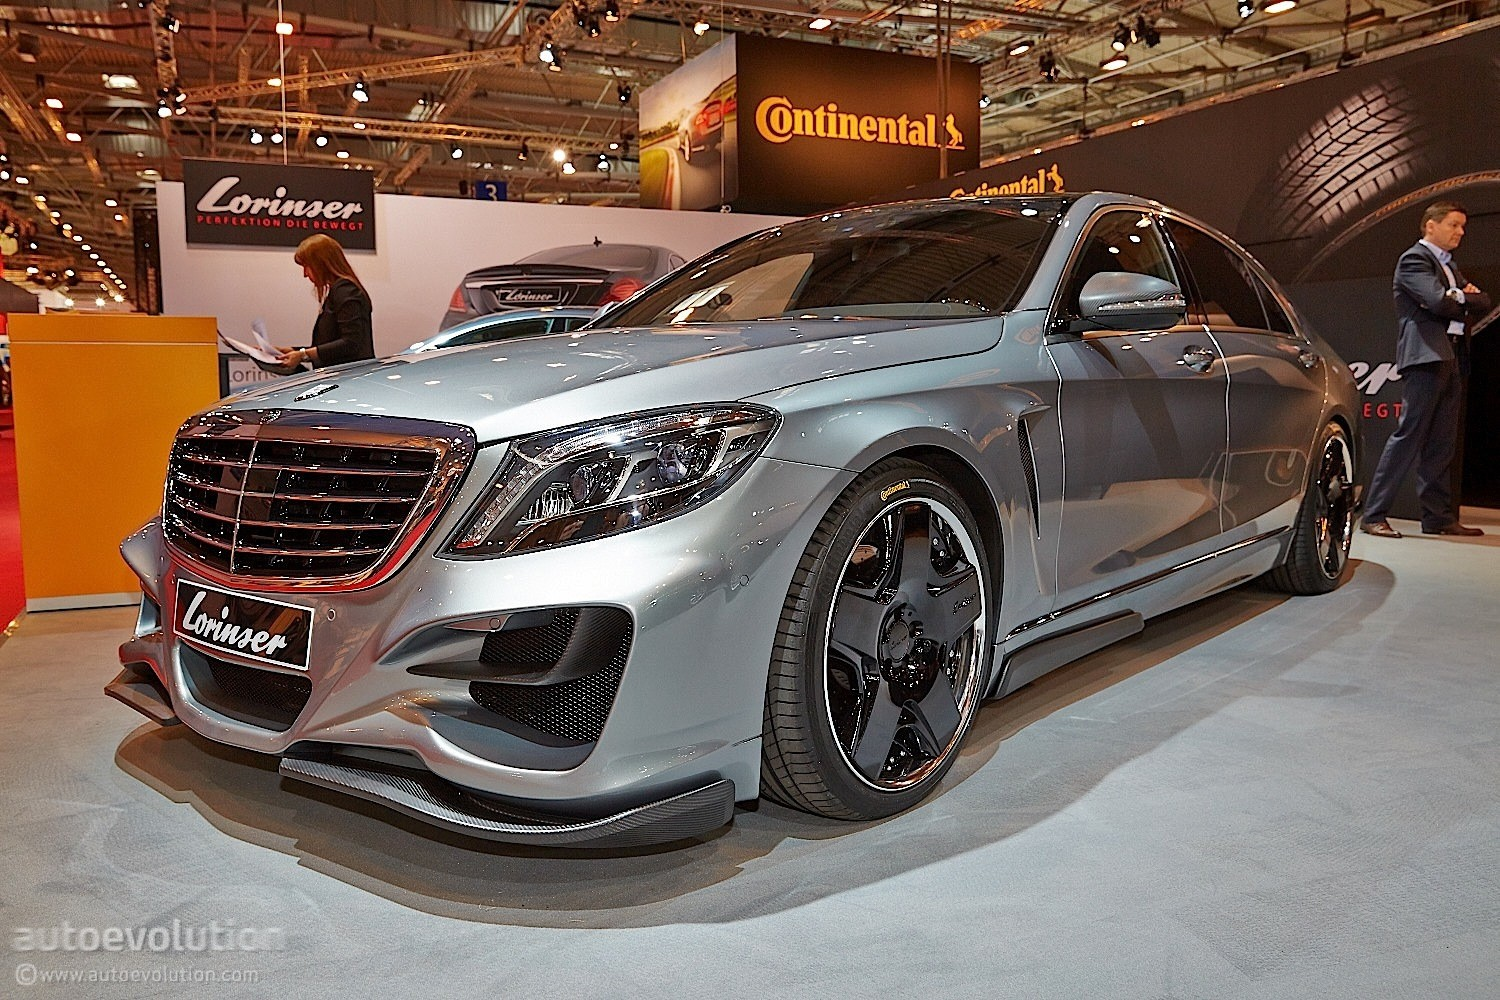 Lorinser Mercedes Benz S Class Posing As A Bad Boy At